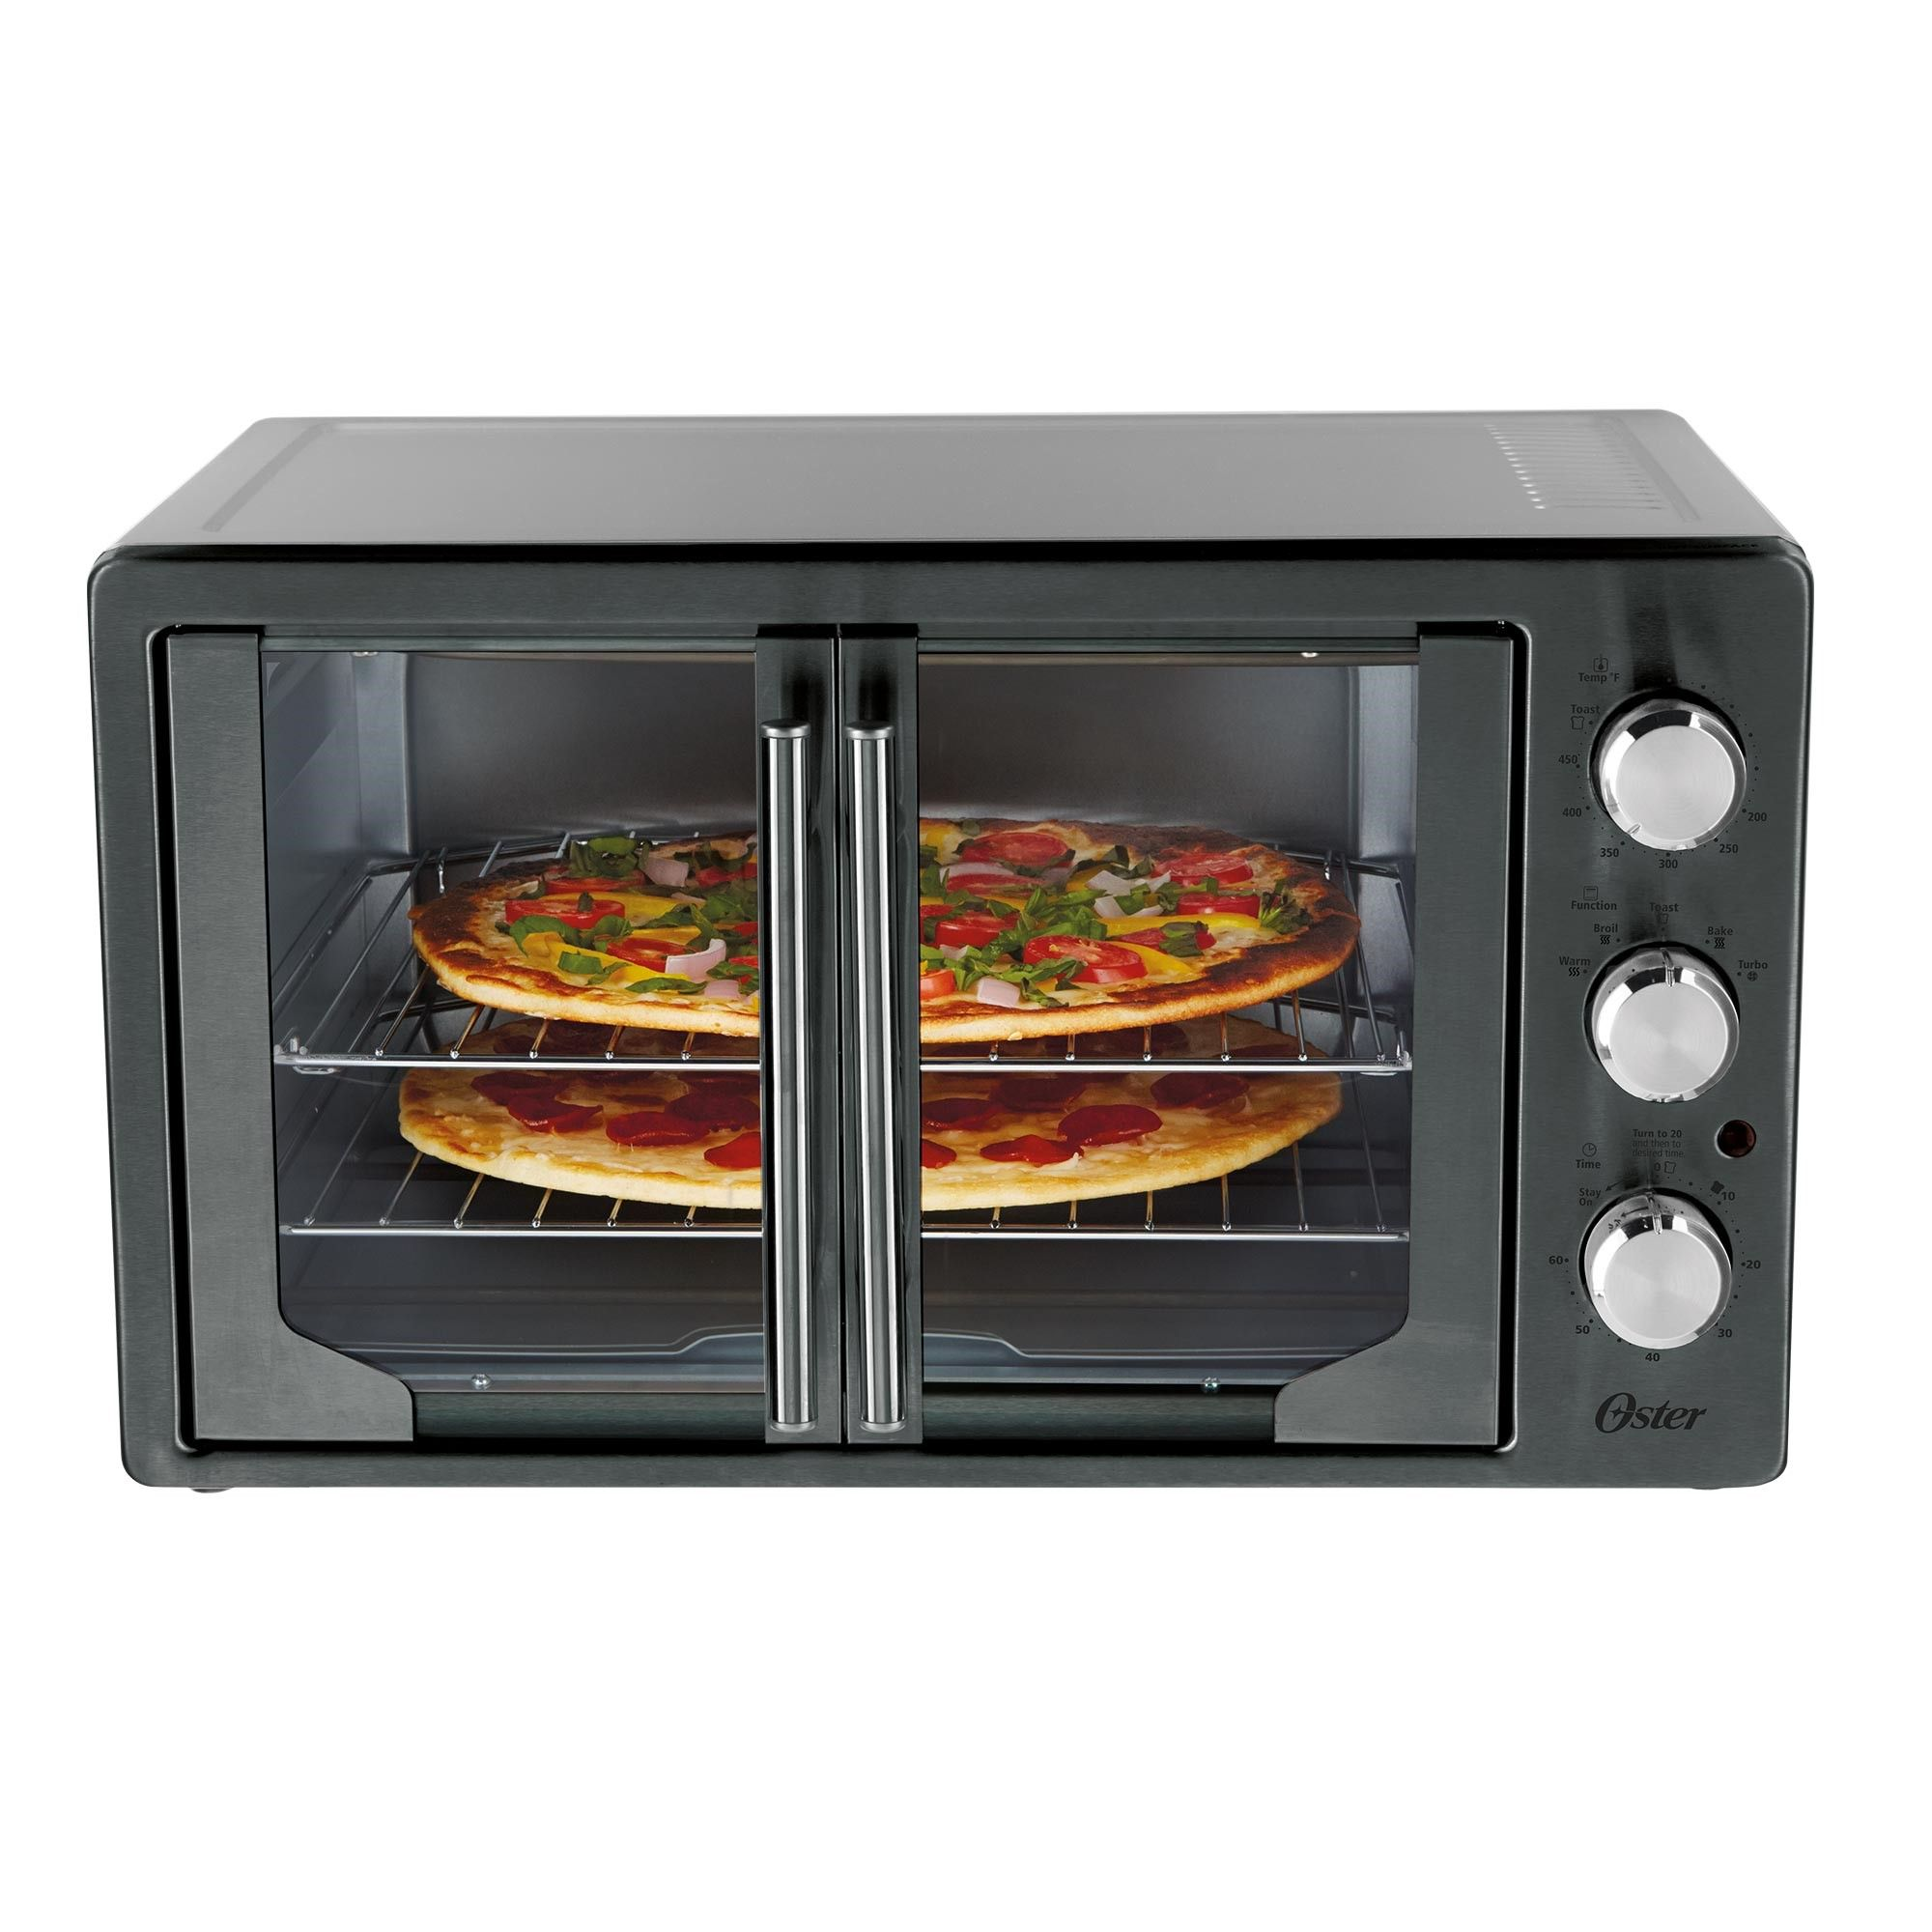 Oster Metallic Charcoal French Door Oven With Convection French Door Oven Stainless Steel Oven Countertop Oven